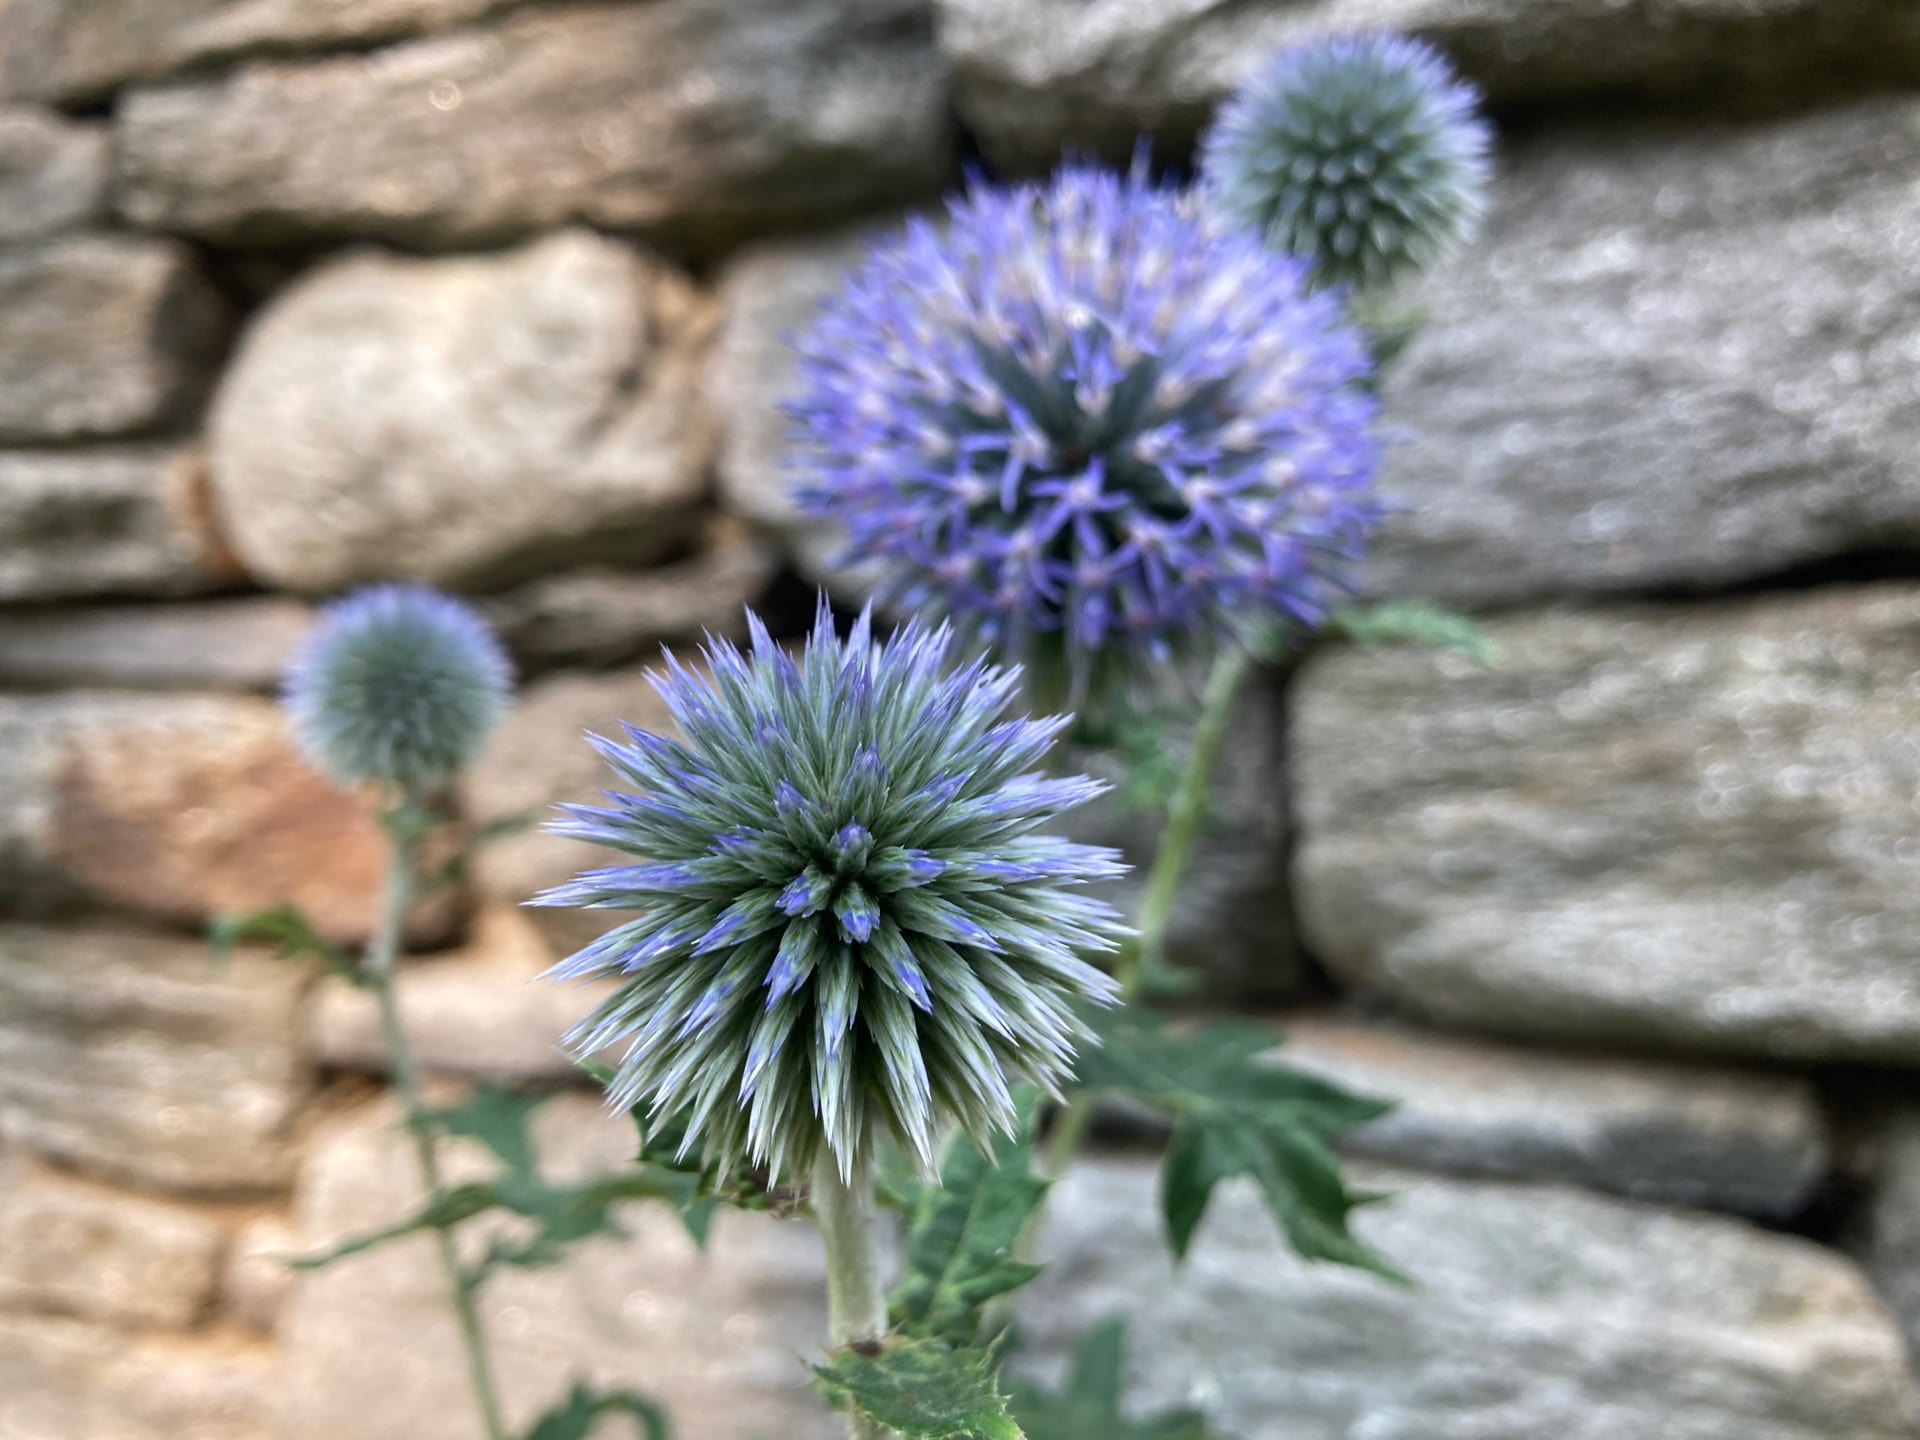 The geometric flowers of the glob thistle. Echinops cv. add an architectural element to the Rock Garden.